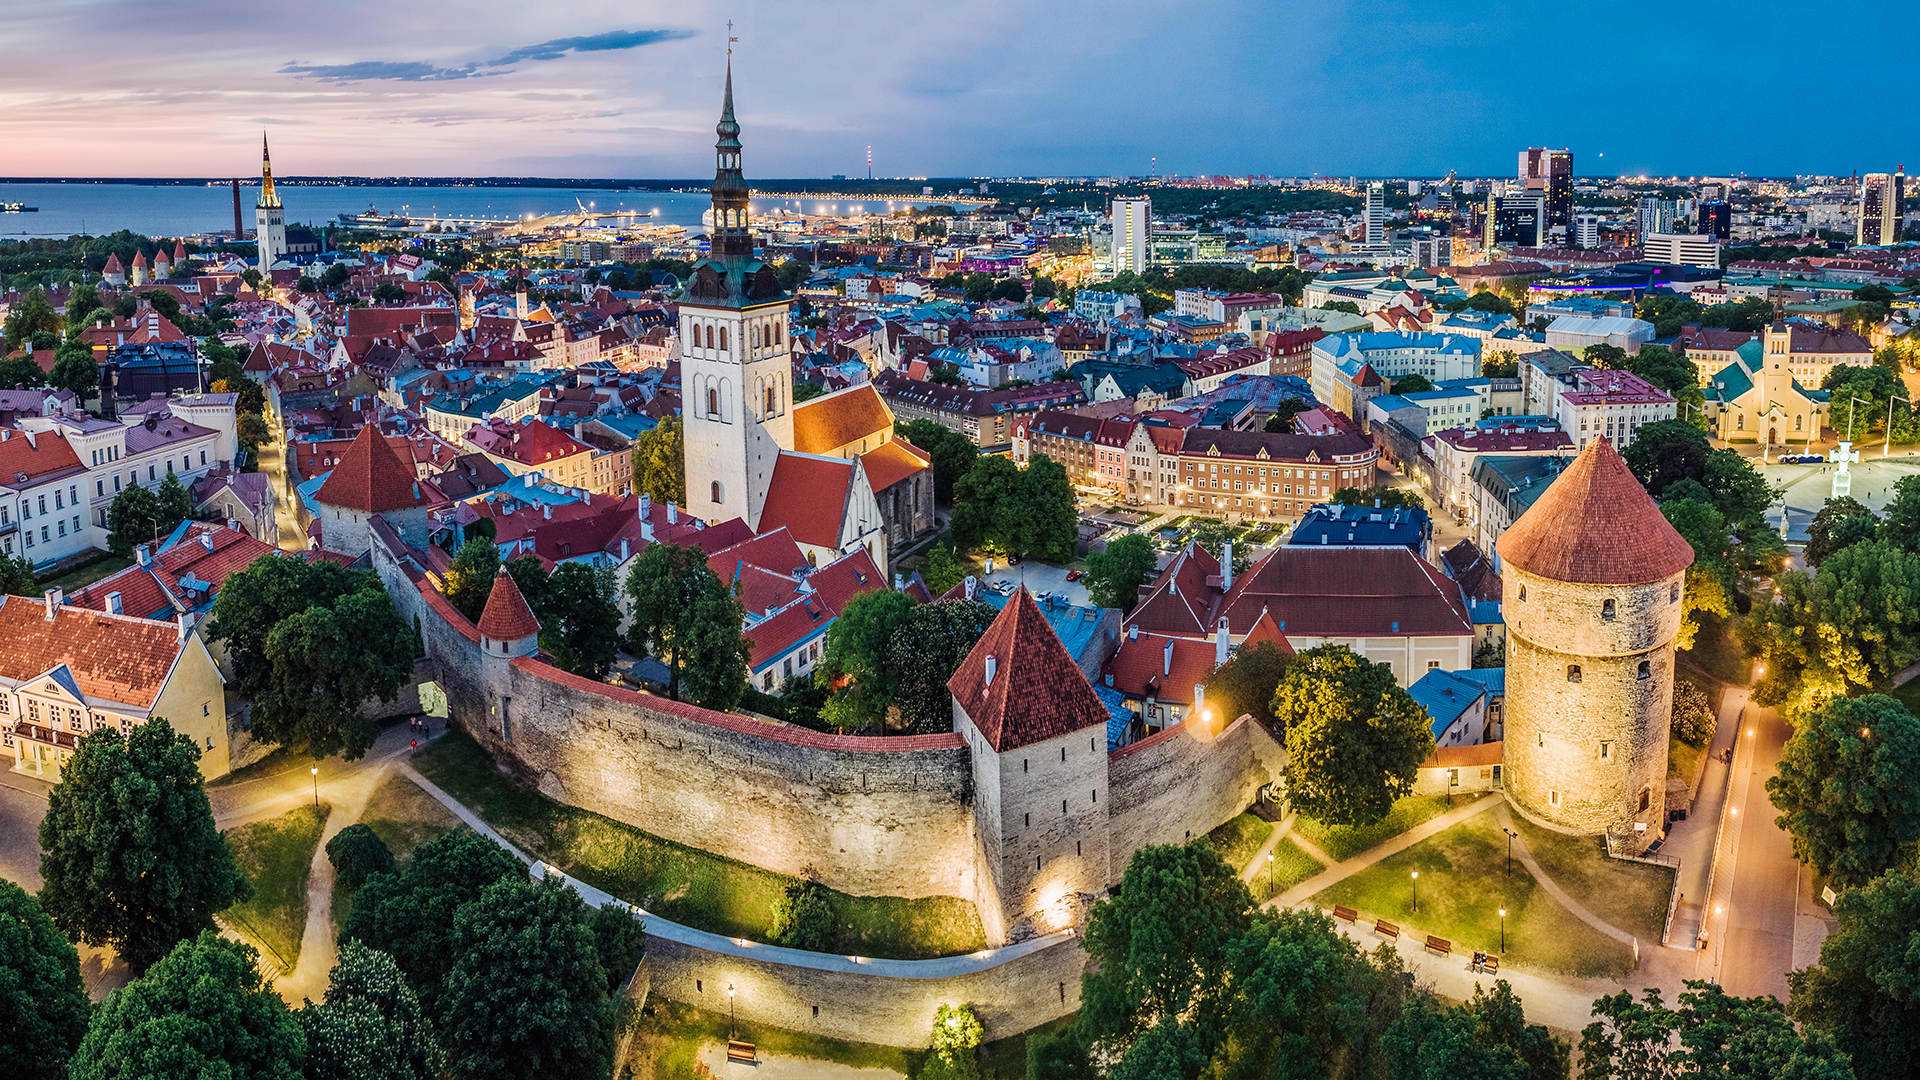 Adult Services In Tallinn Estonia